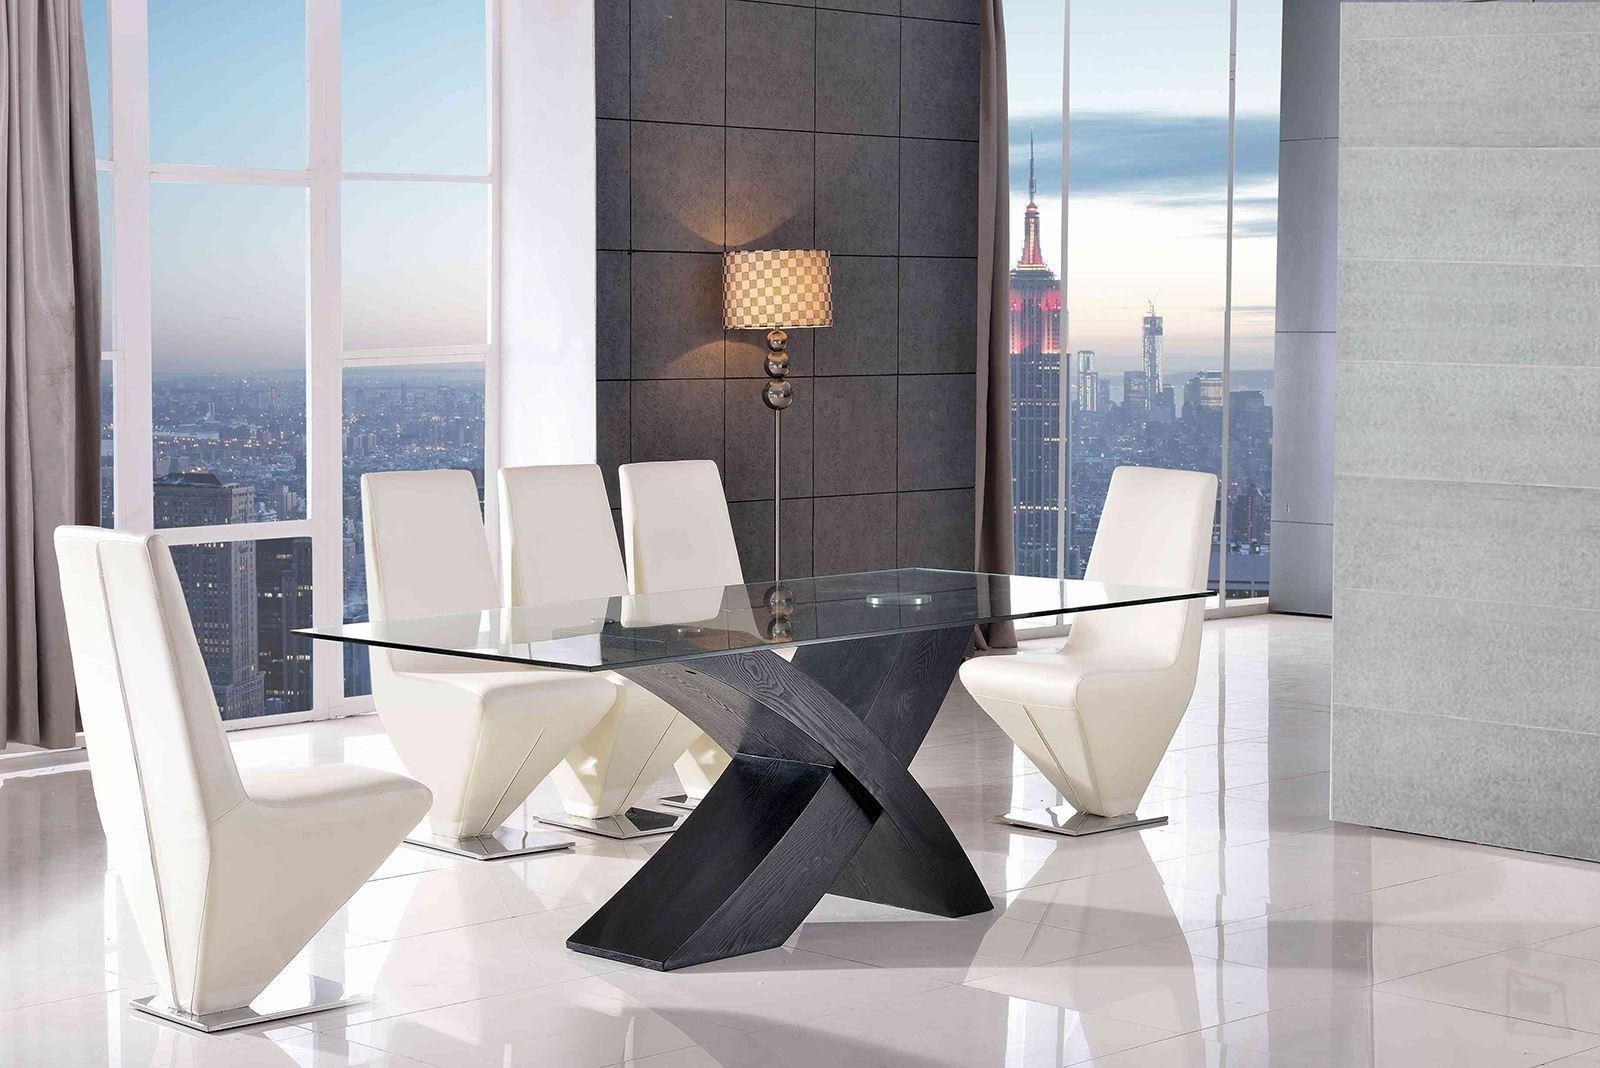 Valencia Black 160cm Wood and Glass Dining Table with 6 Rita Designer Dining Chairs [Ivory]